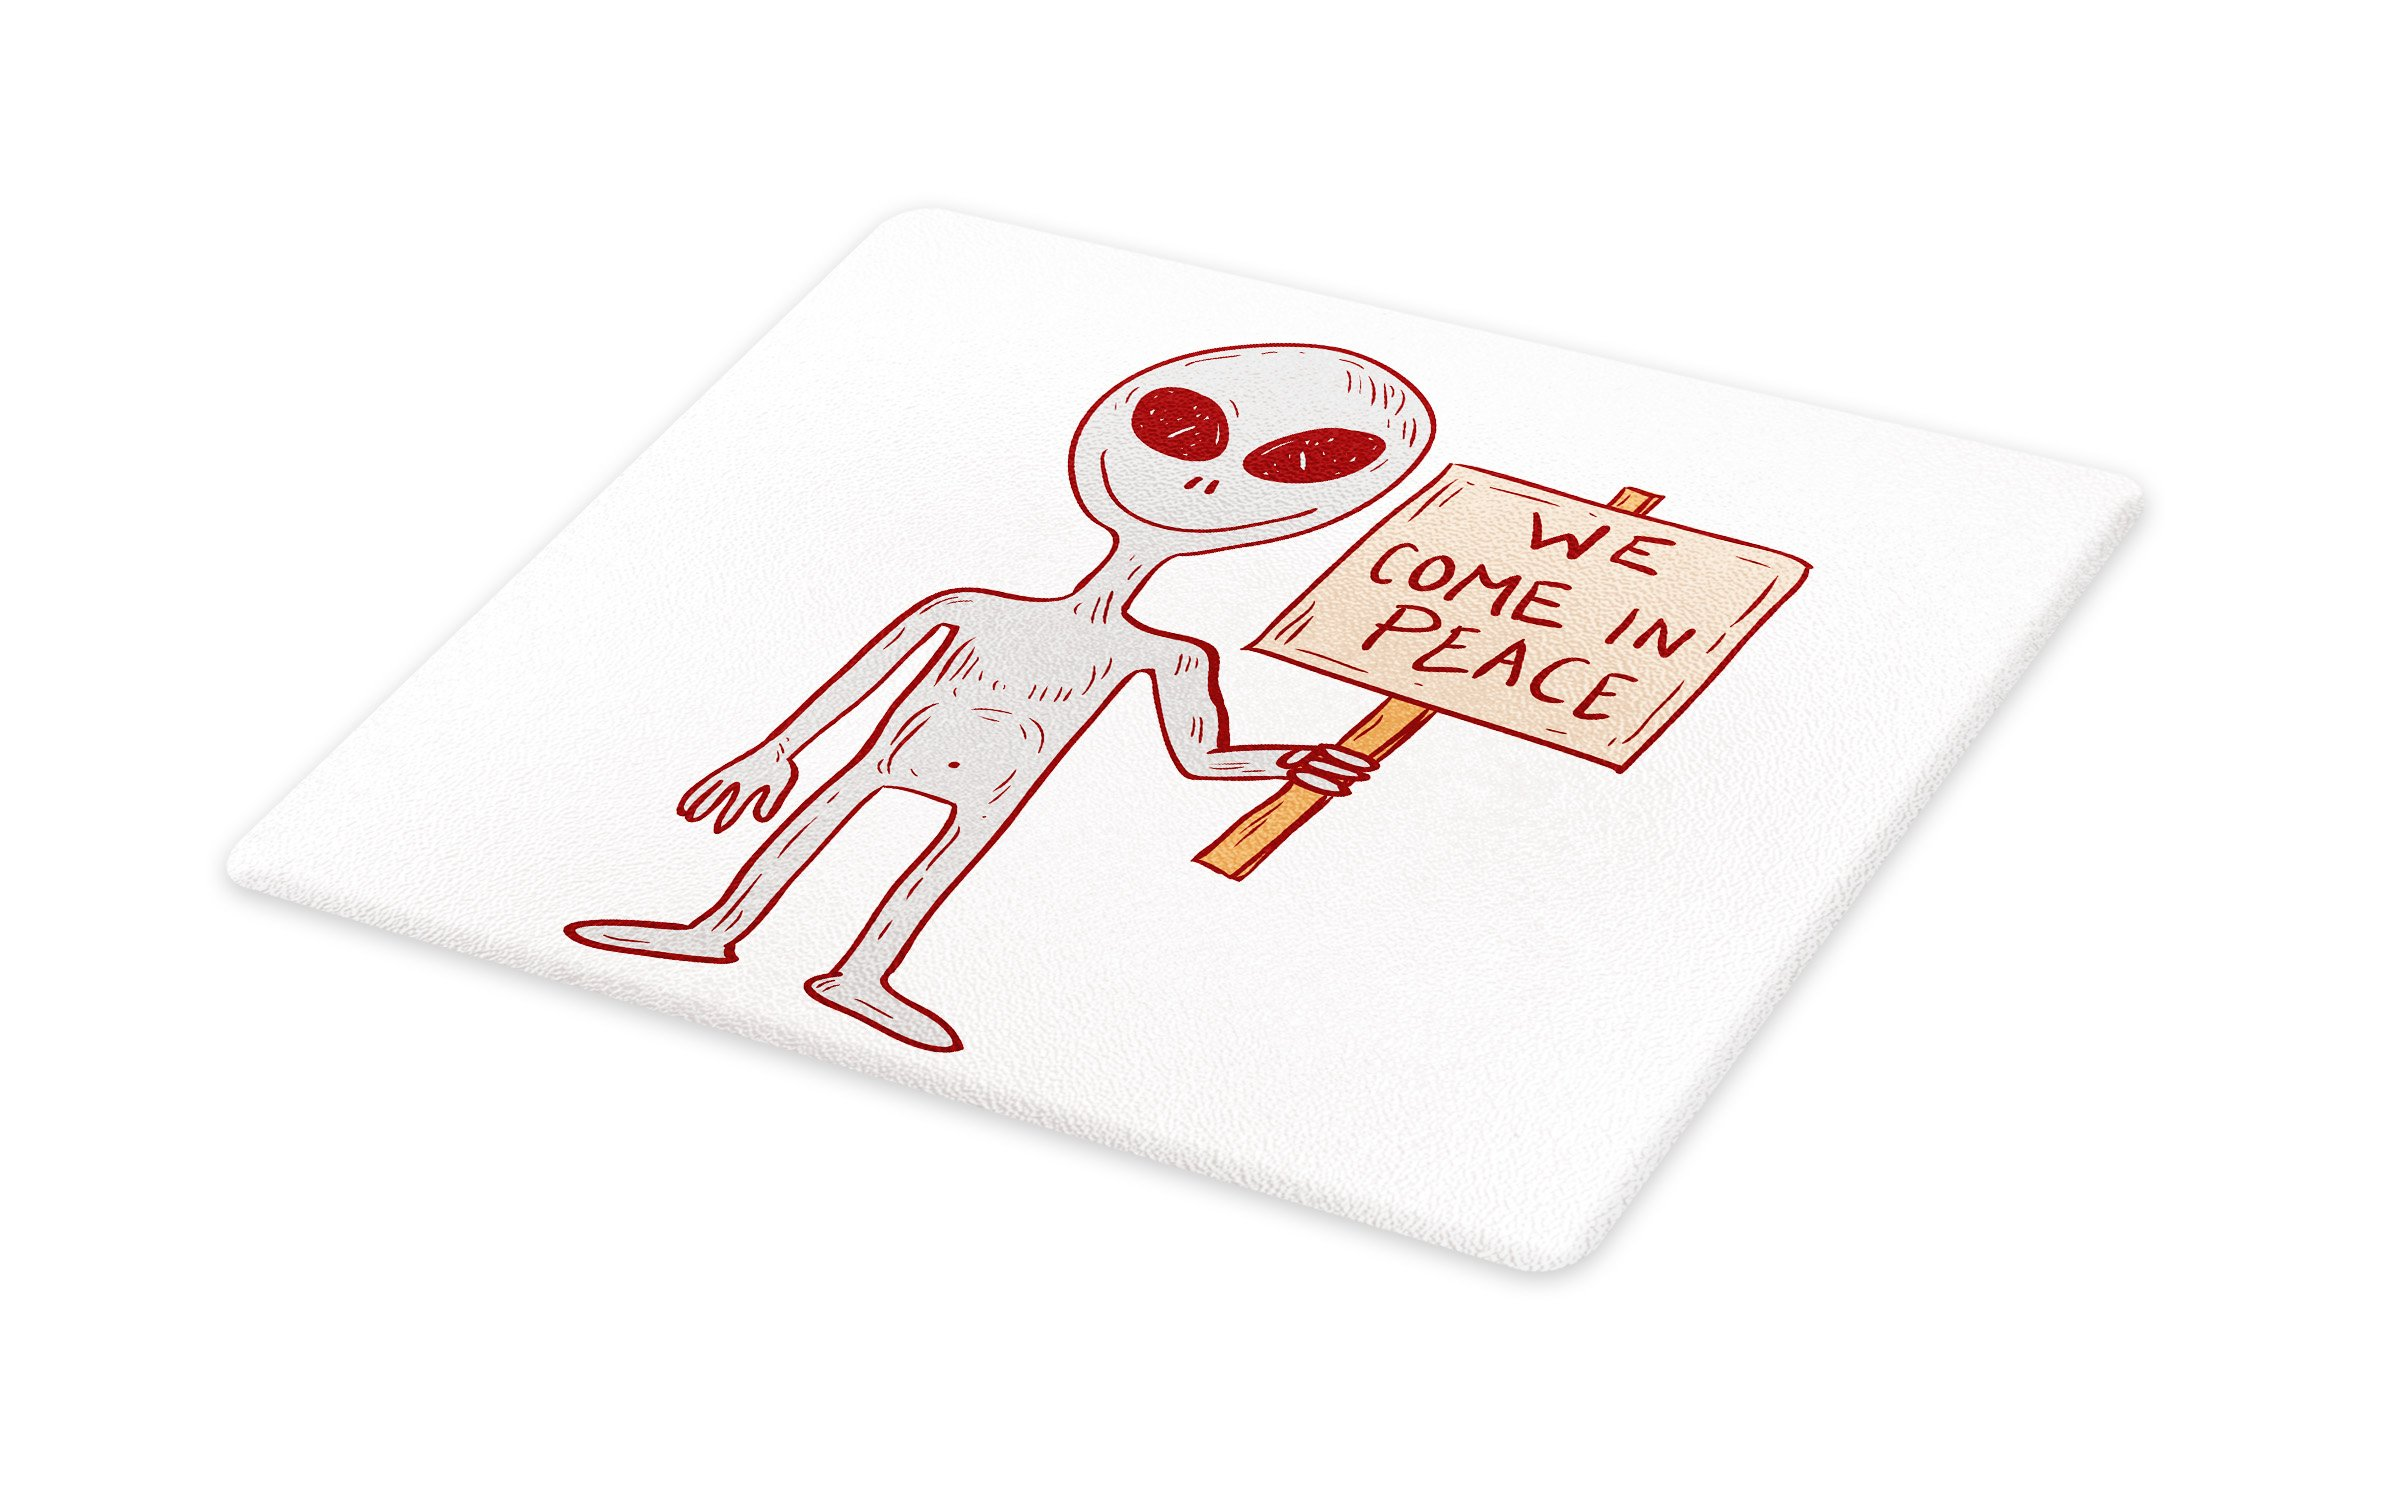 Lunarable Outer Space Cutting Board, Martian Creature with Peaceful Phrase Solar Revolution on Galaxy Print Image, Decorative Tempered Glass Cutting and Serving Board, Small Size, Grey Red